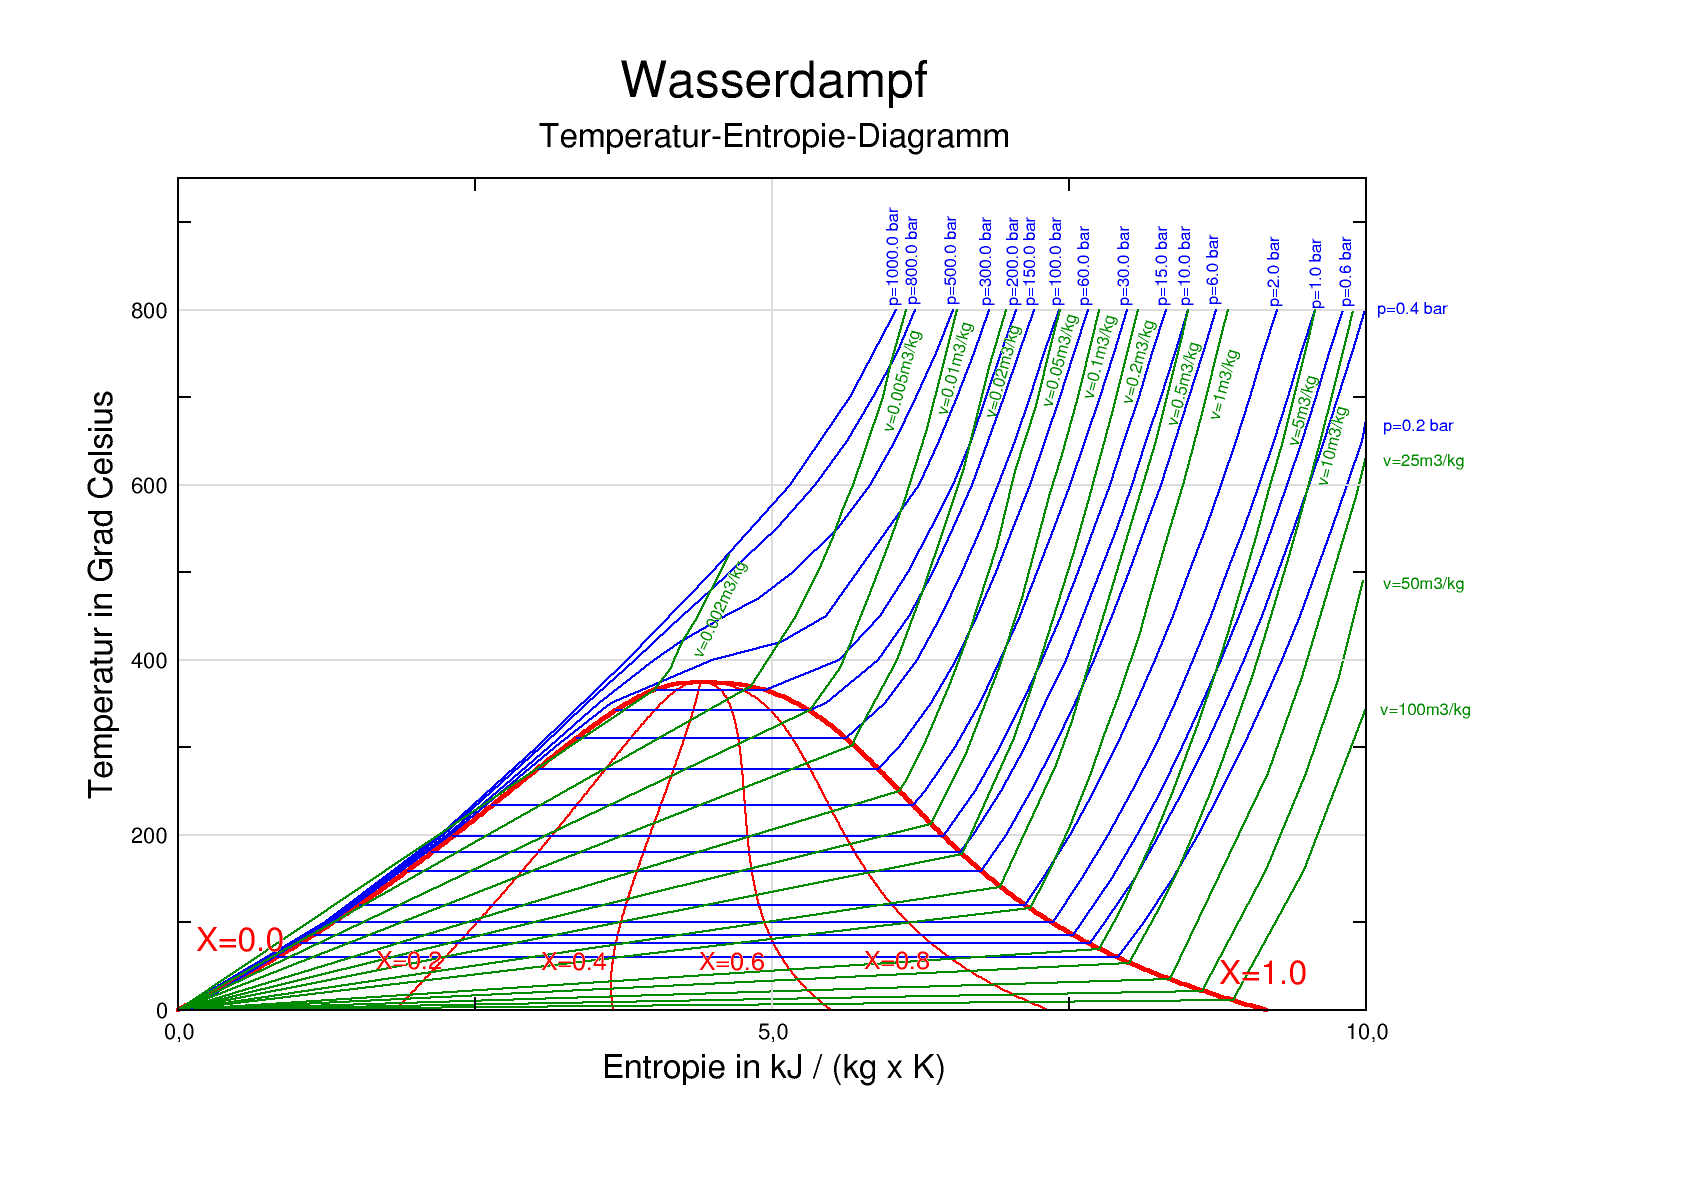 ts diagram for water 4 10 from 13 votes ts diagram for water 5 10 from ...